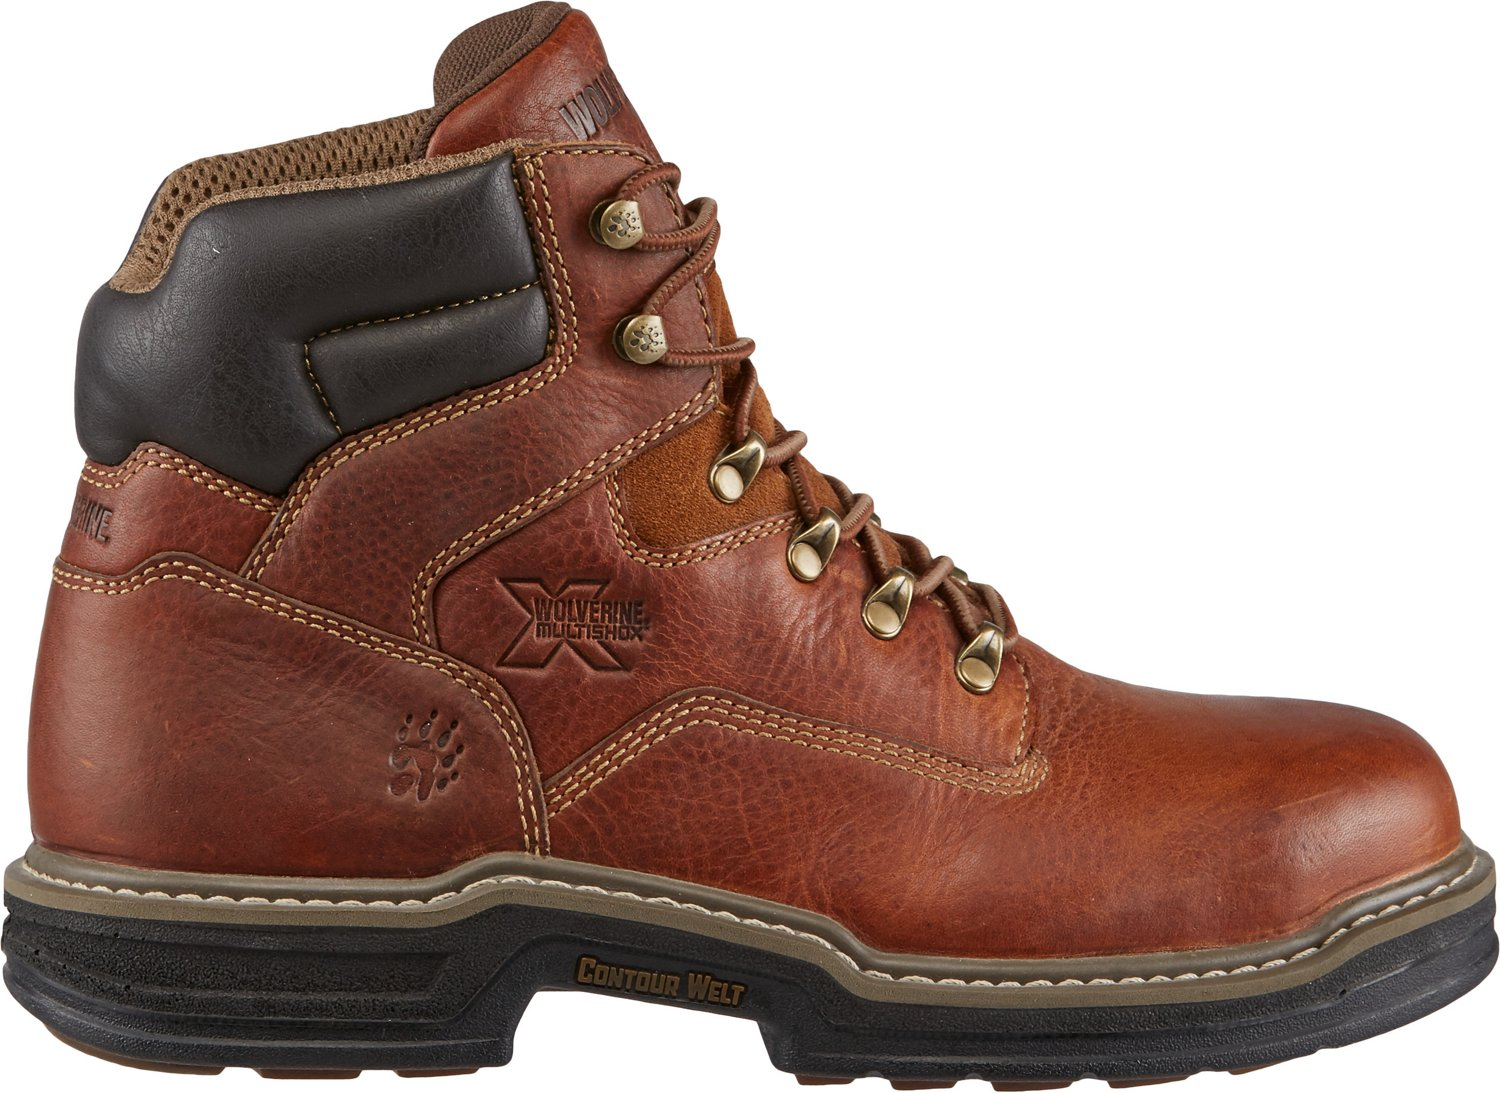 15f6c646258460 Display product reviews for Wolverine Men s Raider Steel-Toe Work Boots